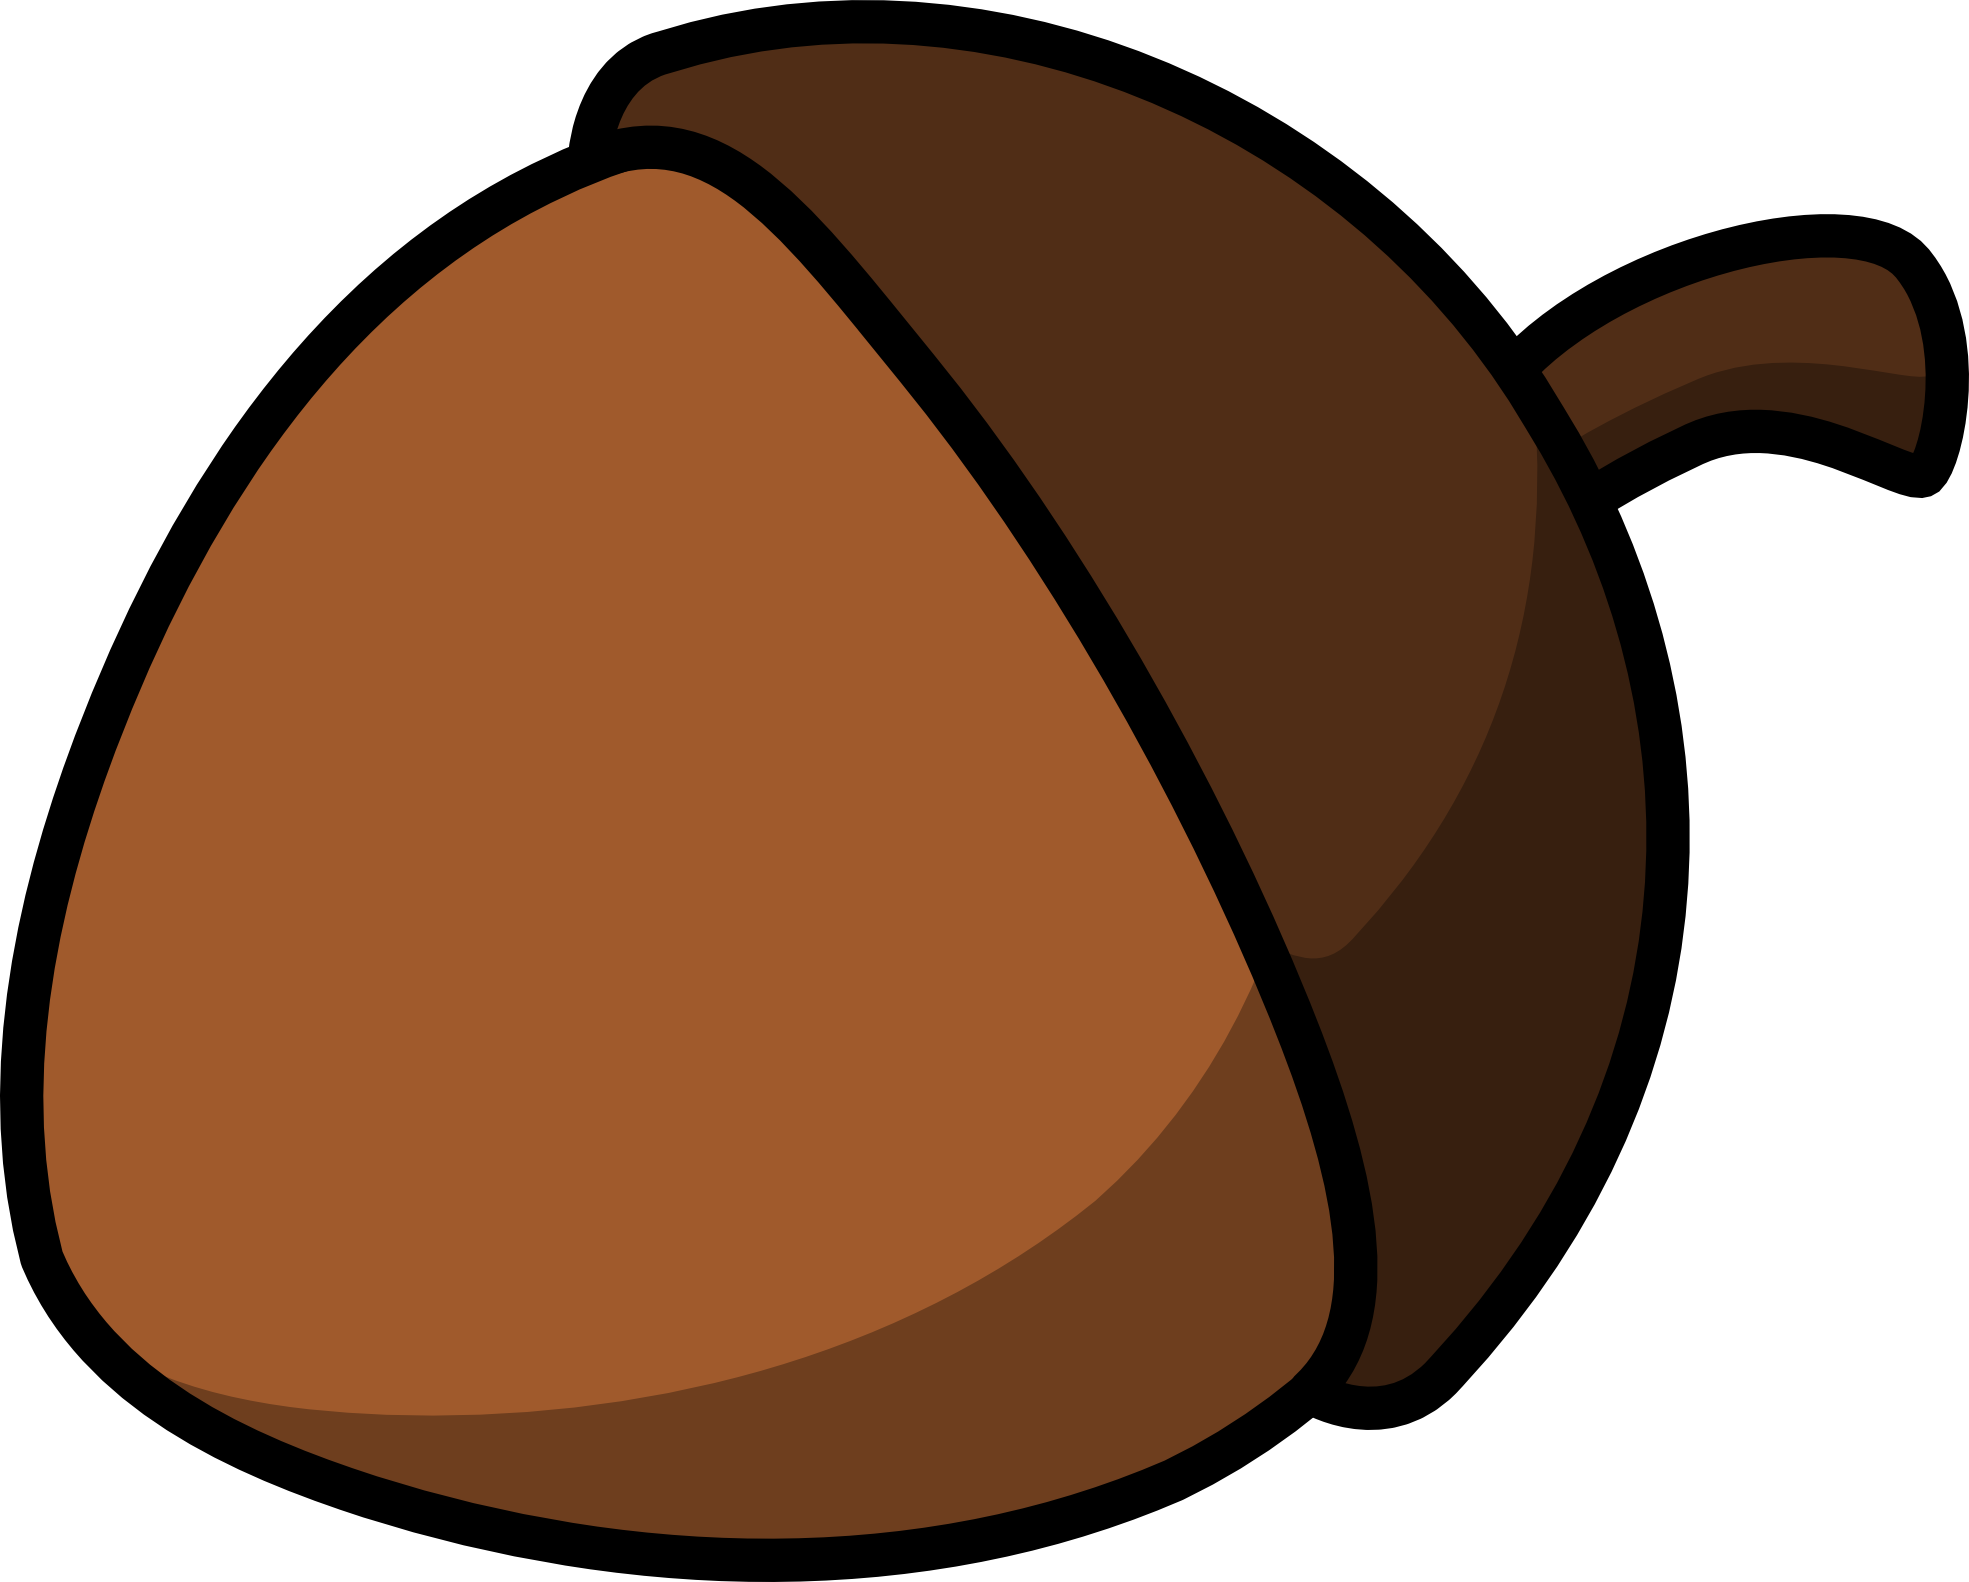 Acorn transparent clipart. Free